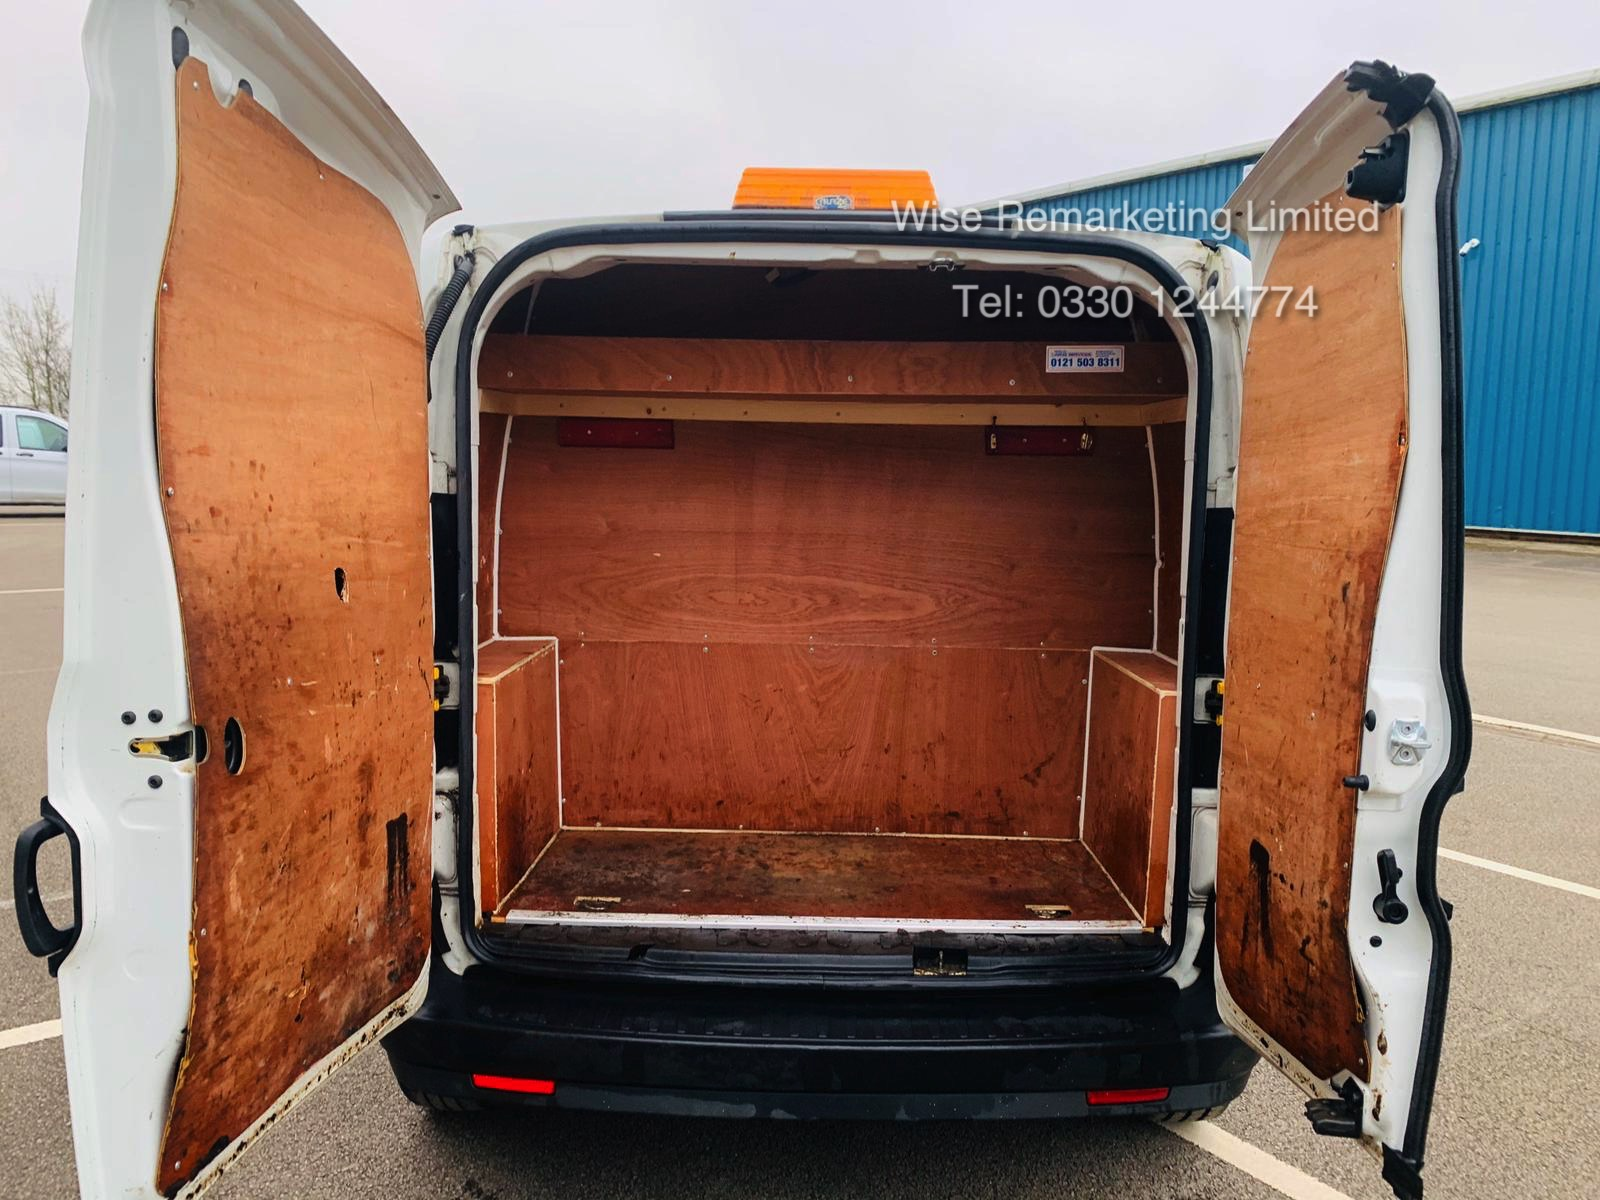 Vauxhall Combo 2300 1.6 CDTI Long - 2016 Model - 1 Keeper From New - Twin Doors - Ply Lined - Image 11 of 21